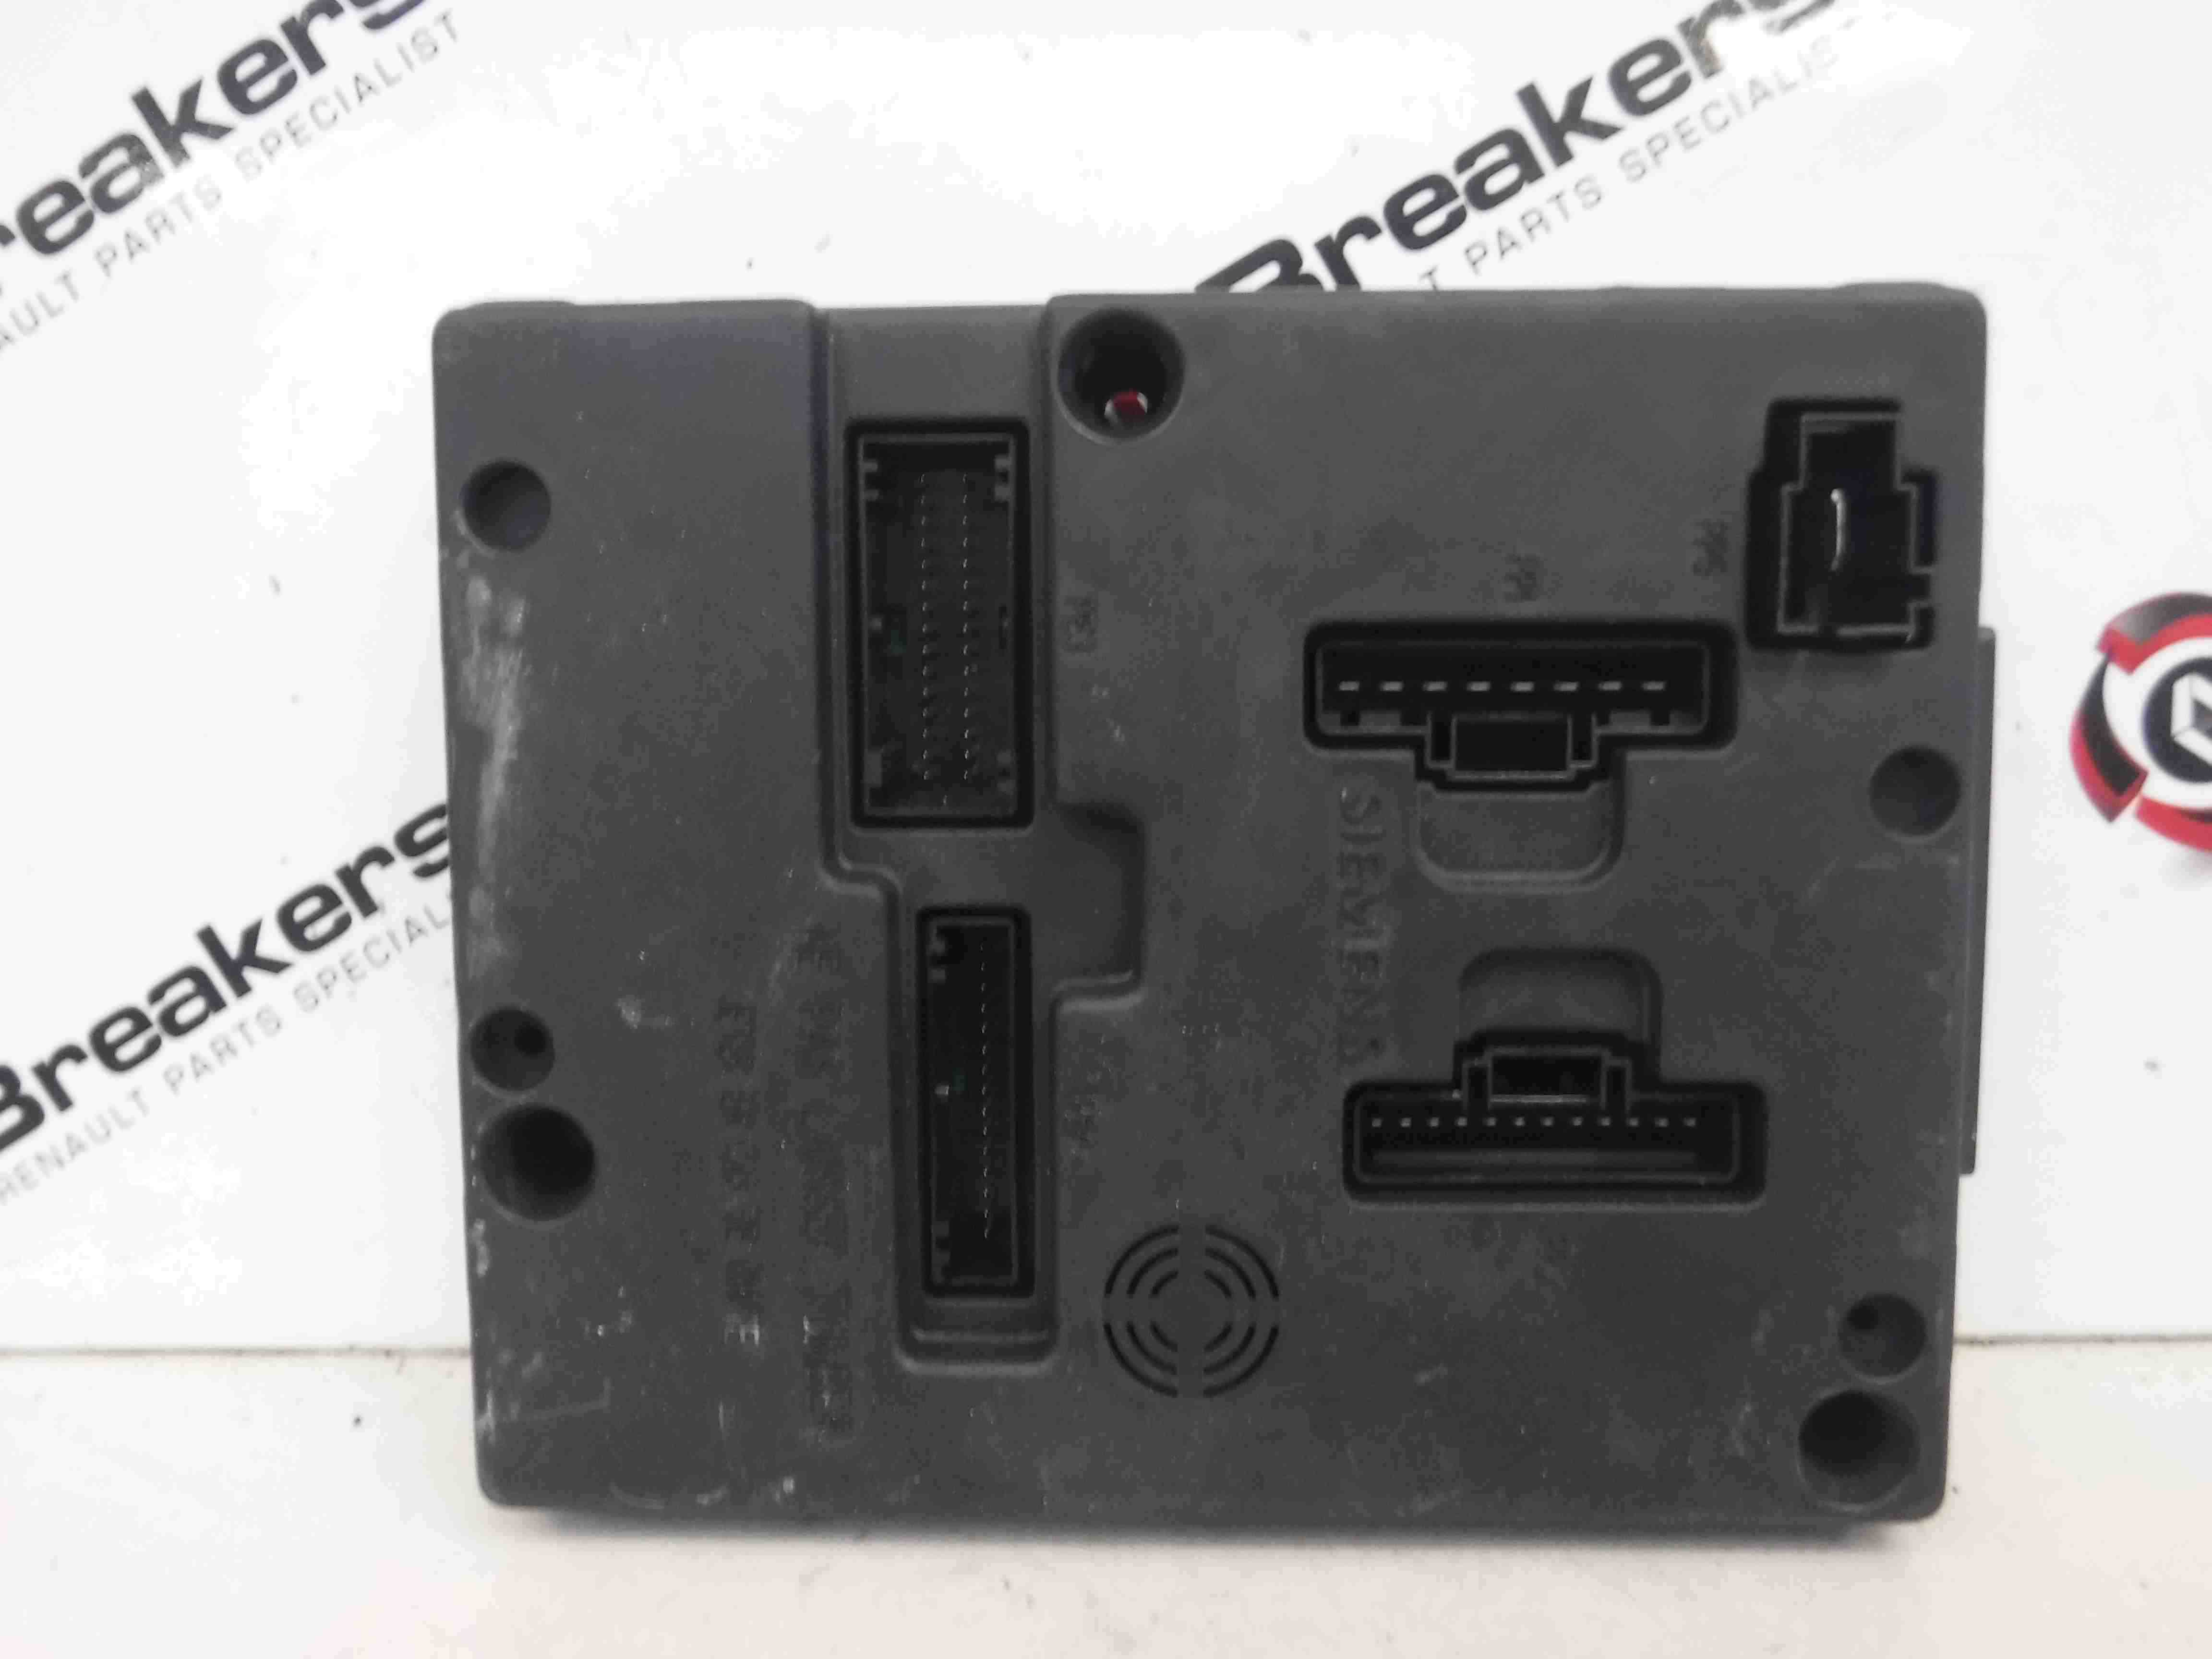 1995 Vw Cabrio Fuse Box Diagram Cabby Info Your Online